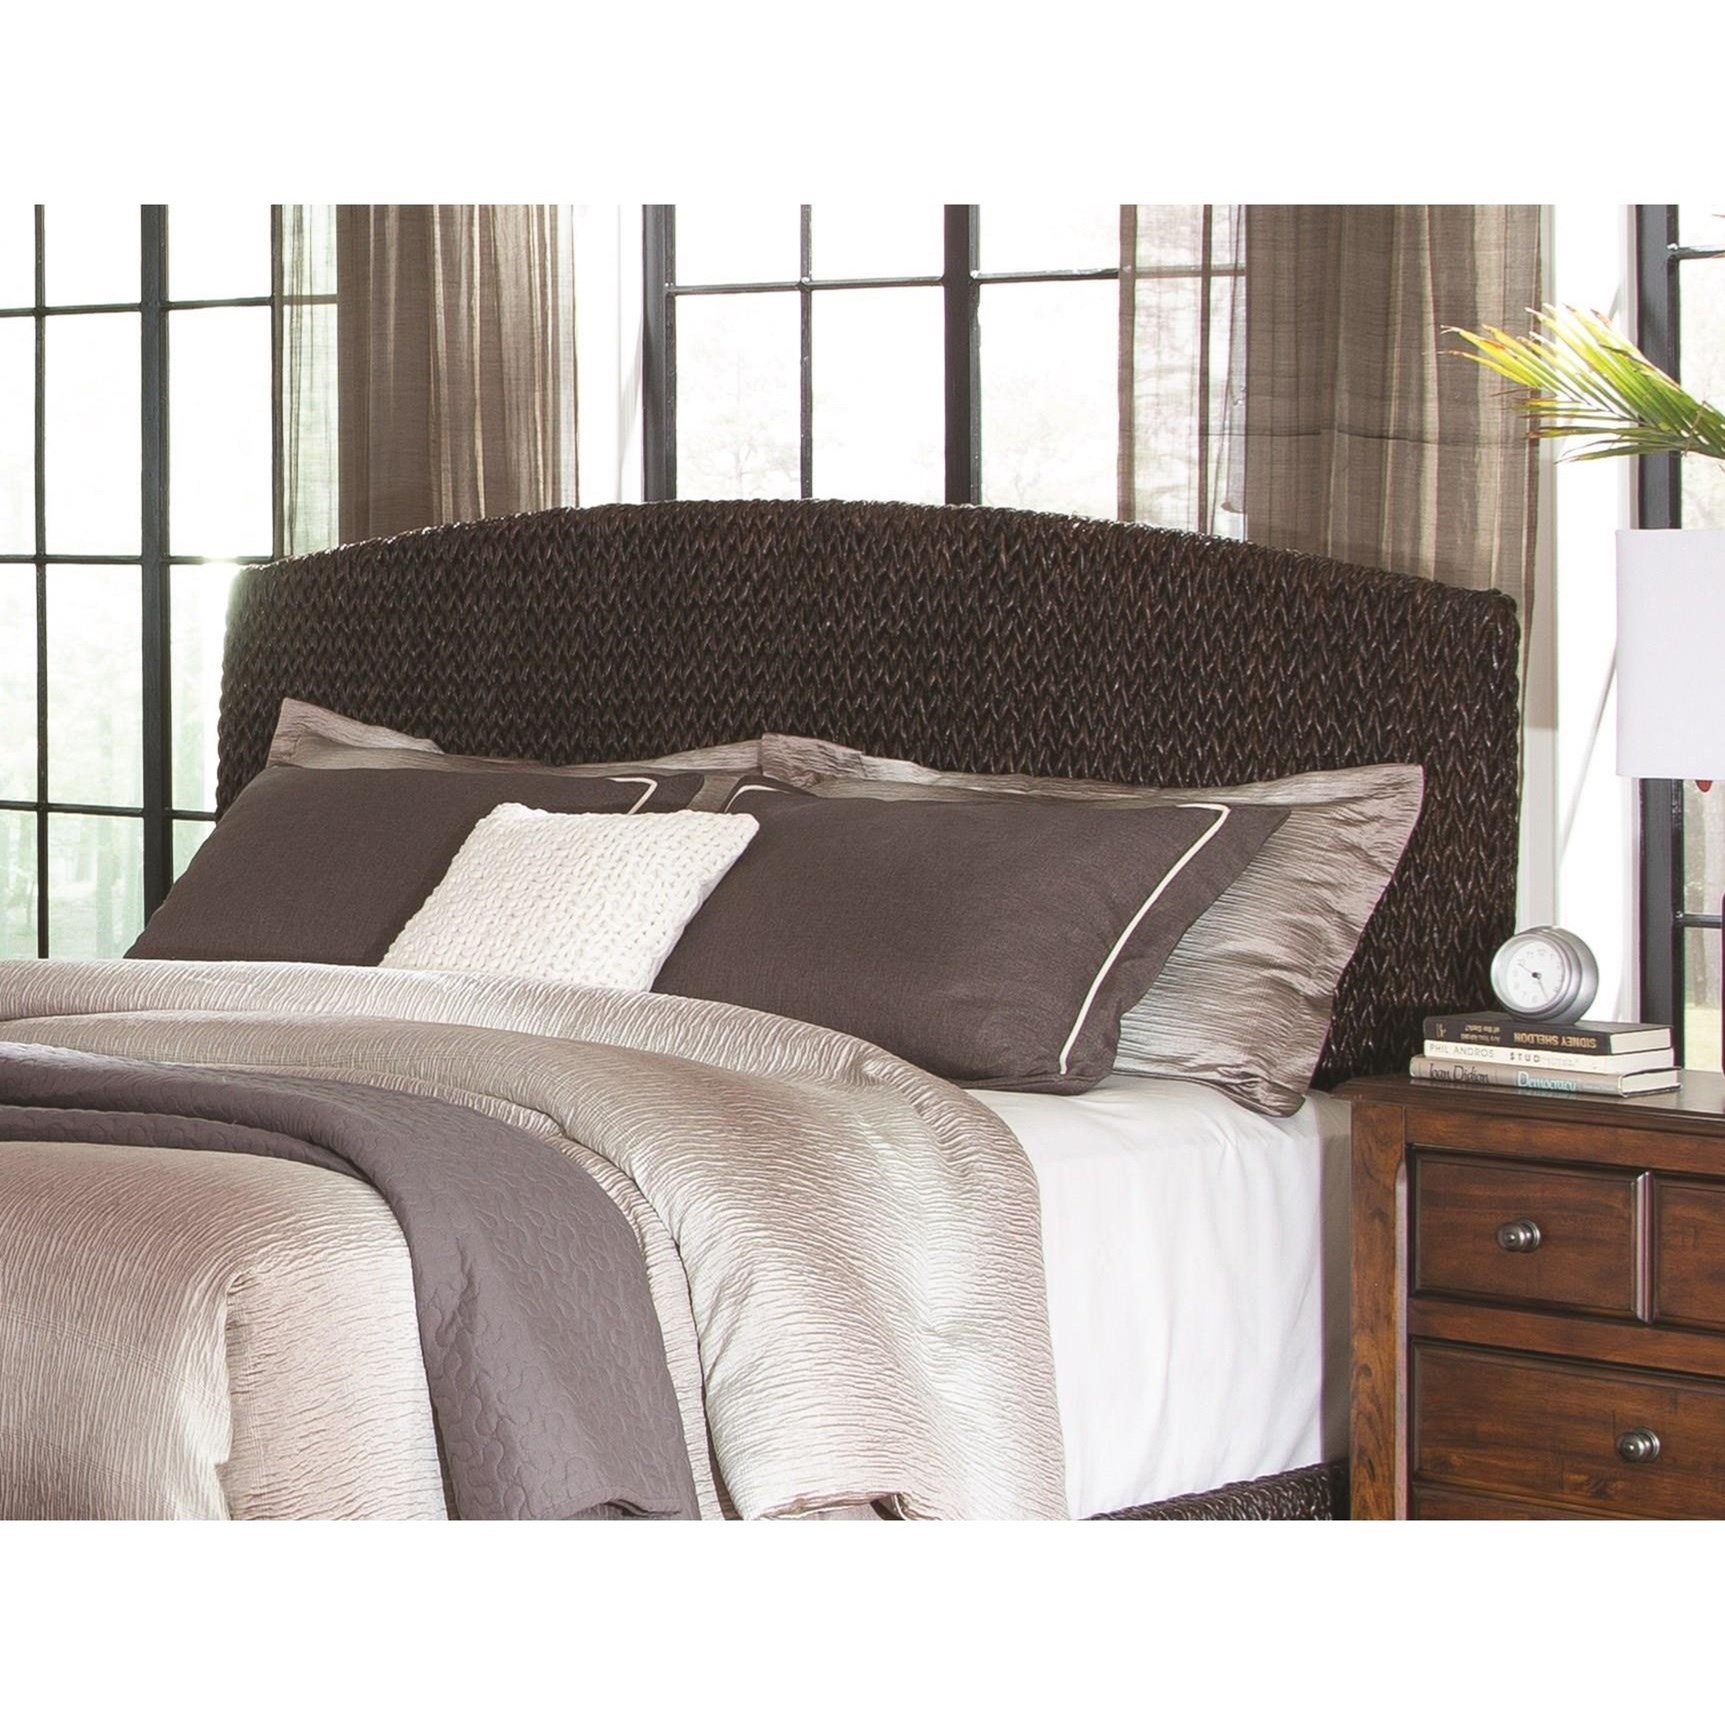 Coaster Laughton Queen Headboard - Item Number: 300500QB1